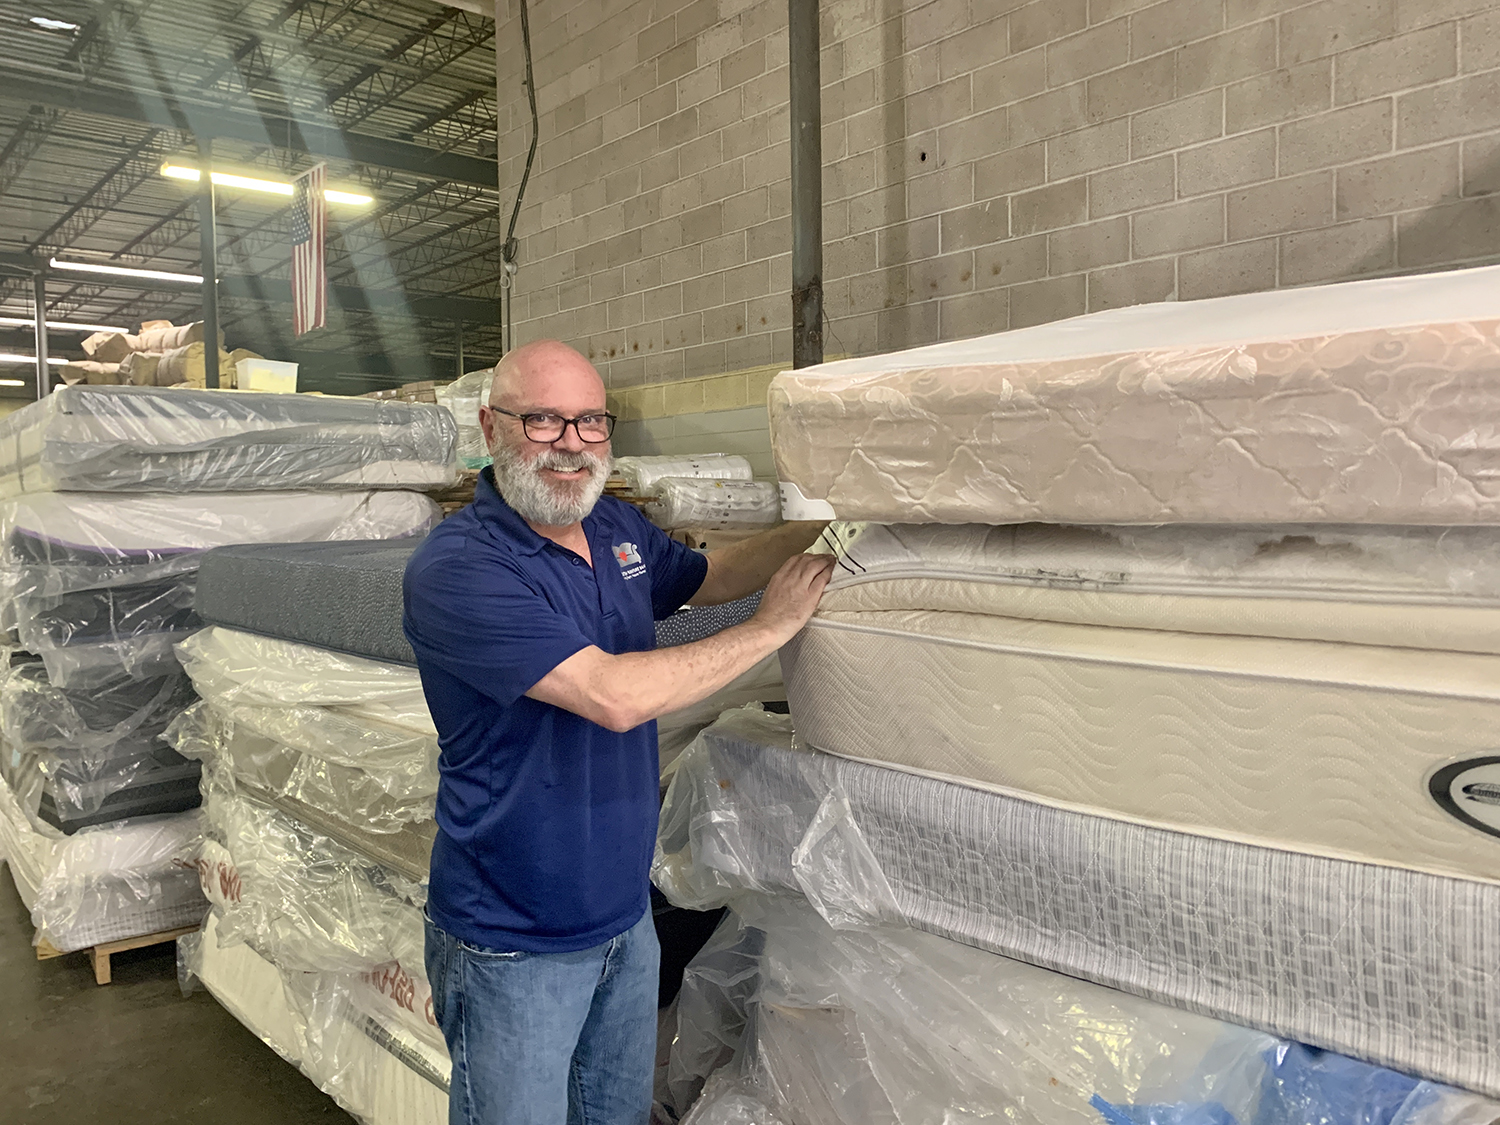 Hal Lynde in the Mattress Recycling Center